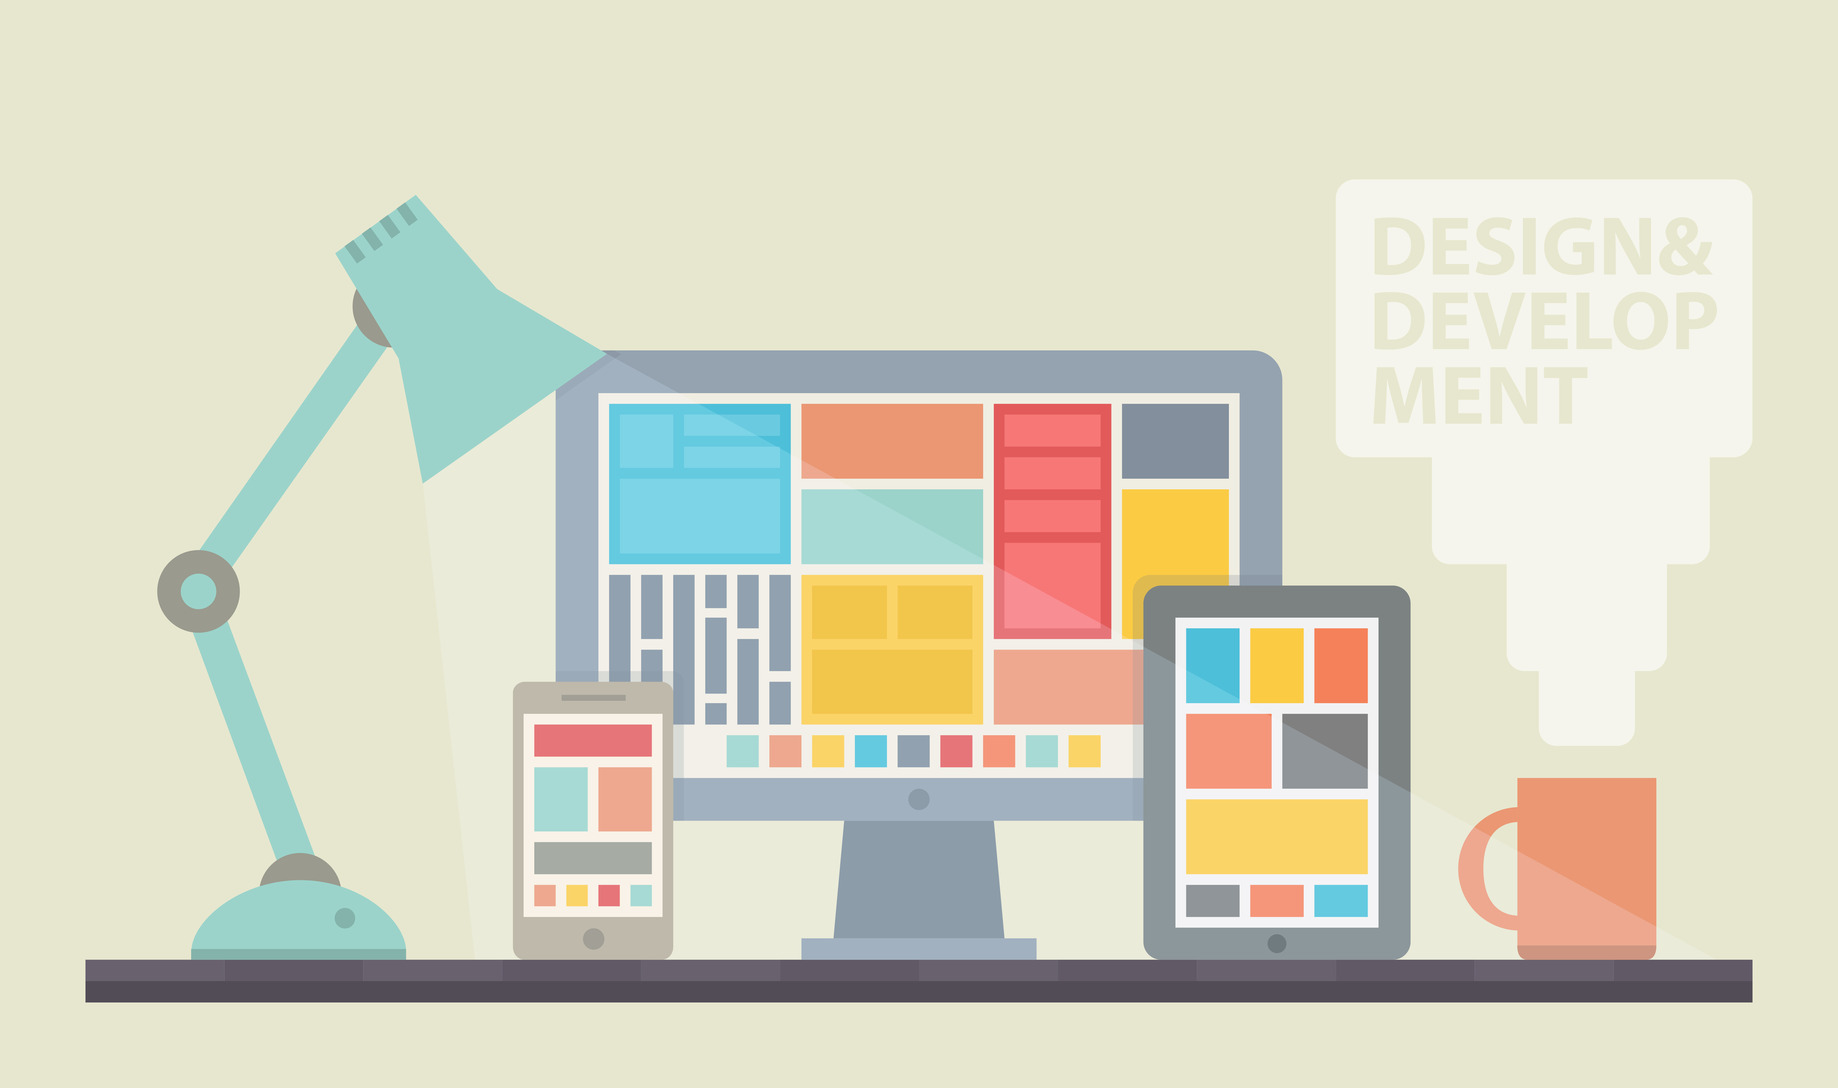 photodune-6171820-web-design-development-illustration-m